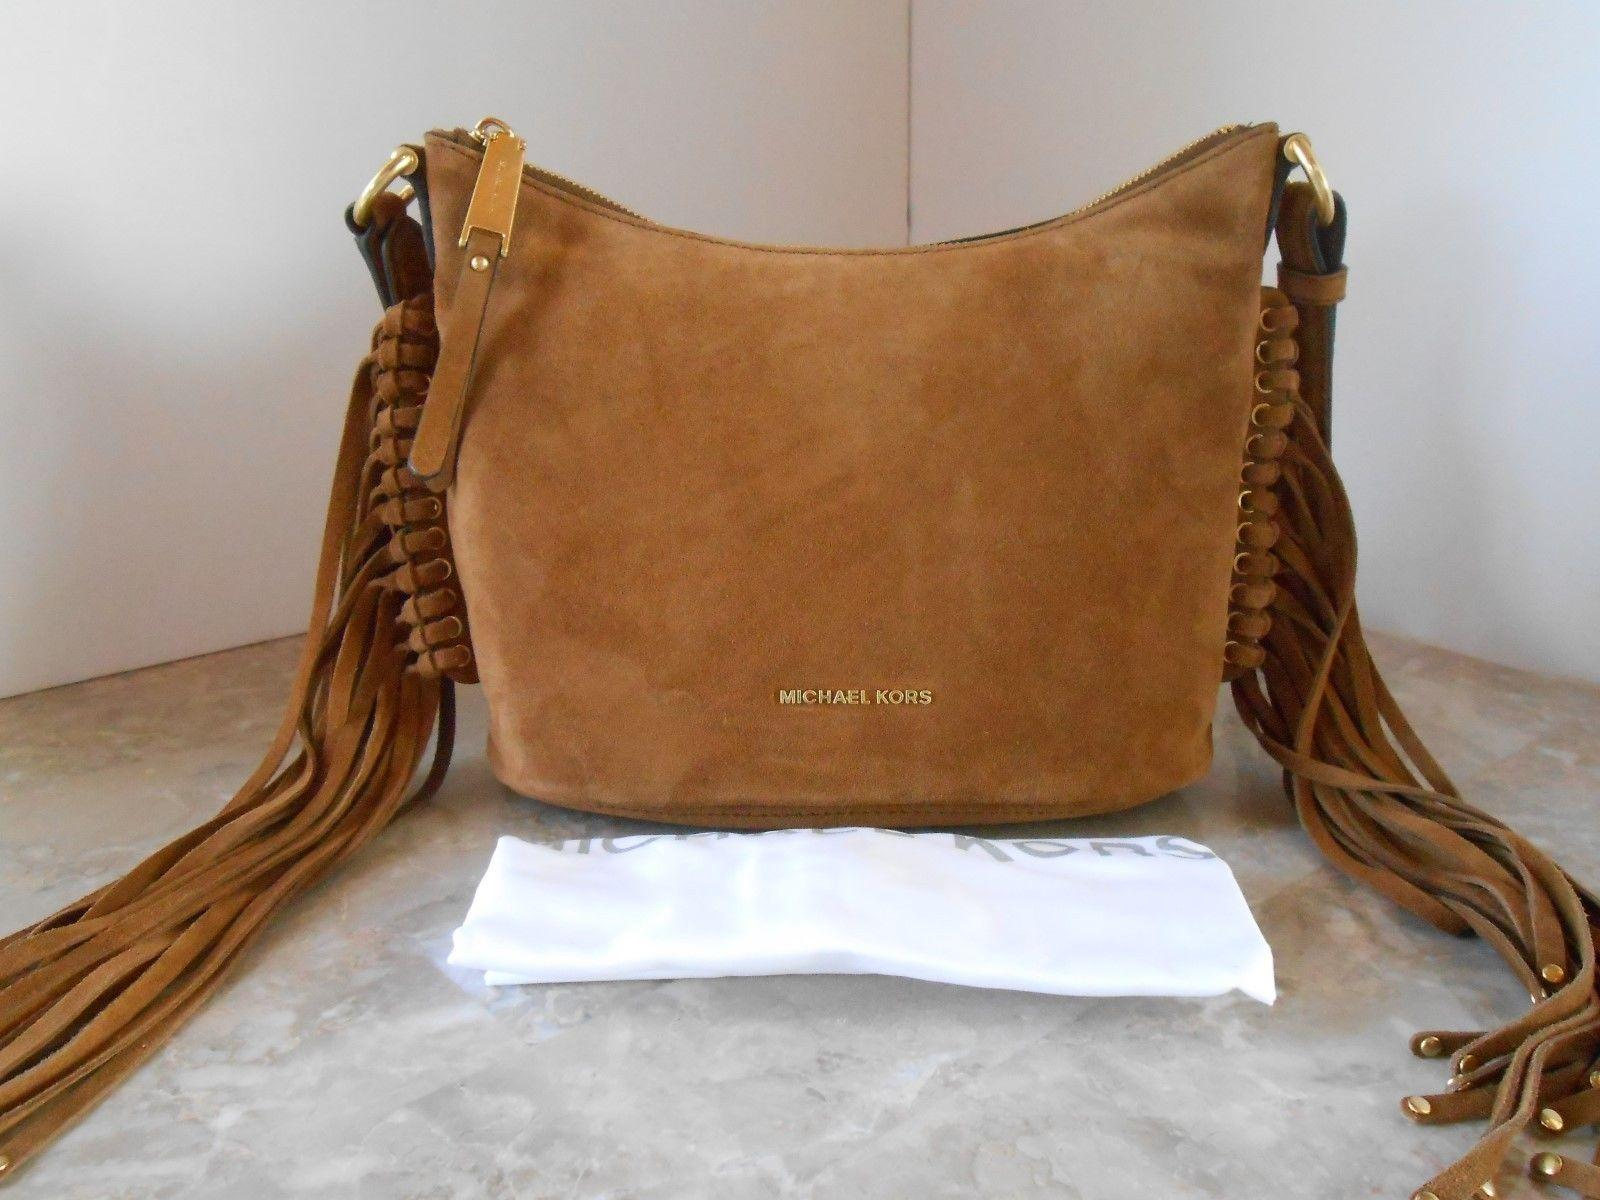 4829a463cc55 ... wholesale michael kors billy medium fringe shoulder dark caramel brown  suede leather cross body bag tradesy